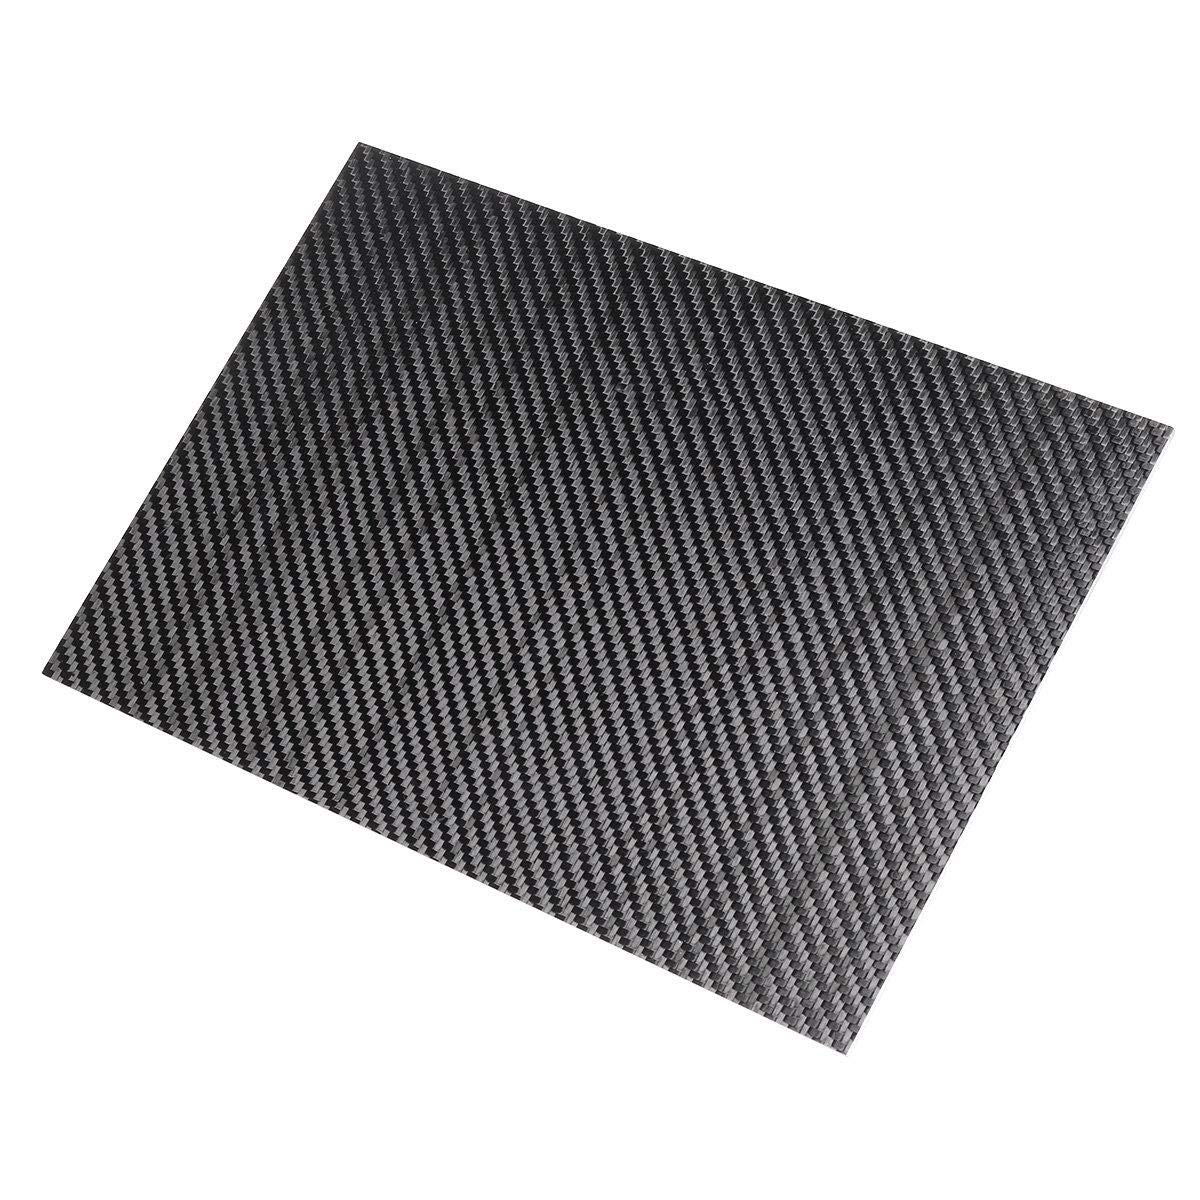 Stock_Home, Raw Materials, 300x500x(0.5-5) mm 3K Black Twill Weave Carbon Fiber Plate Sheet Glossy Carbon Fiber Board Panel High Composite RC Material - (Thickness:4mm)